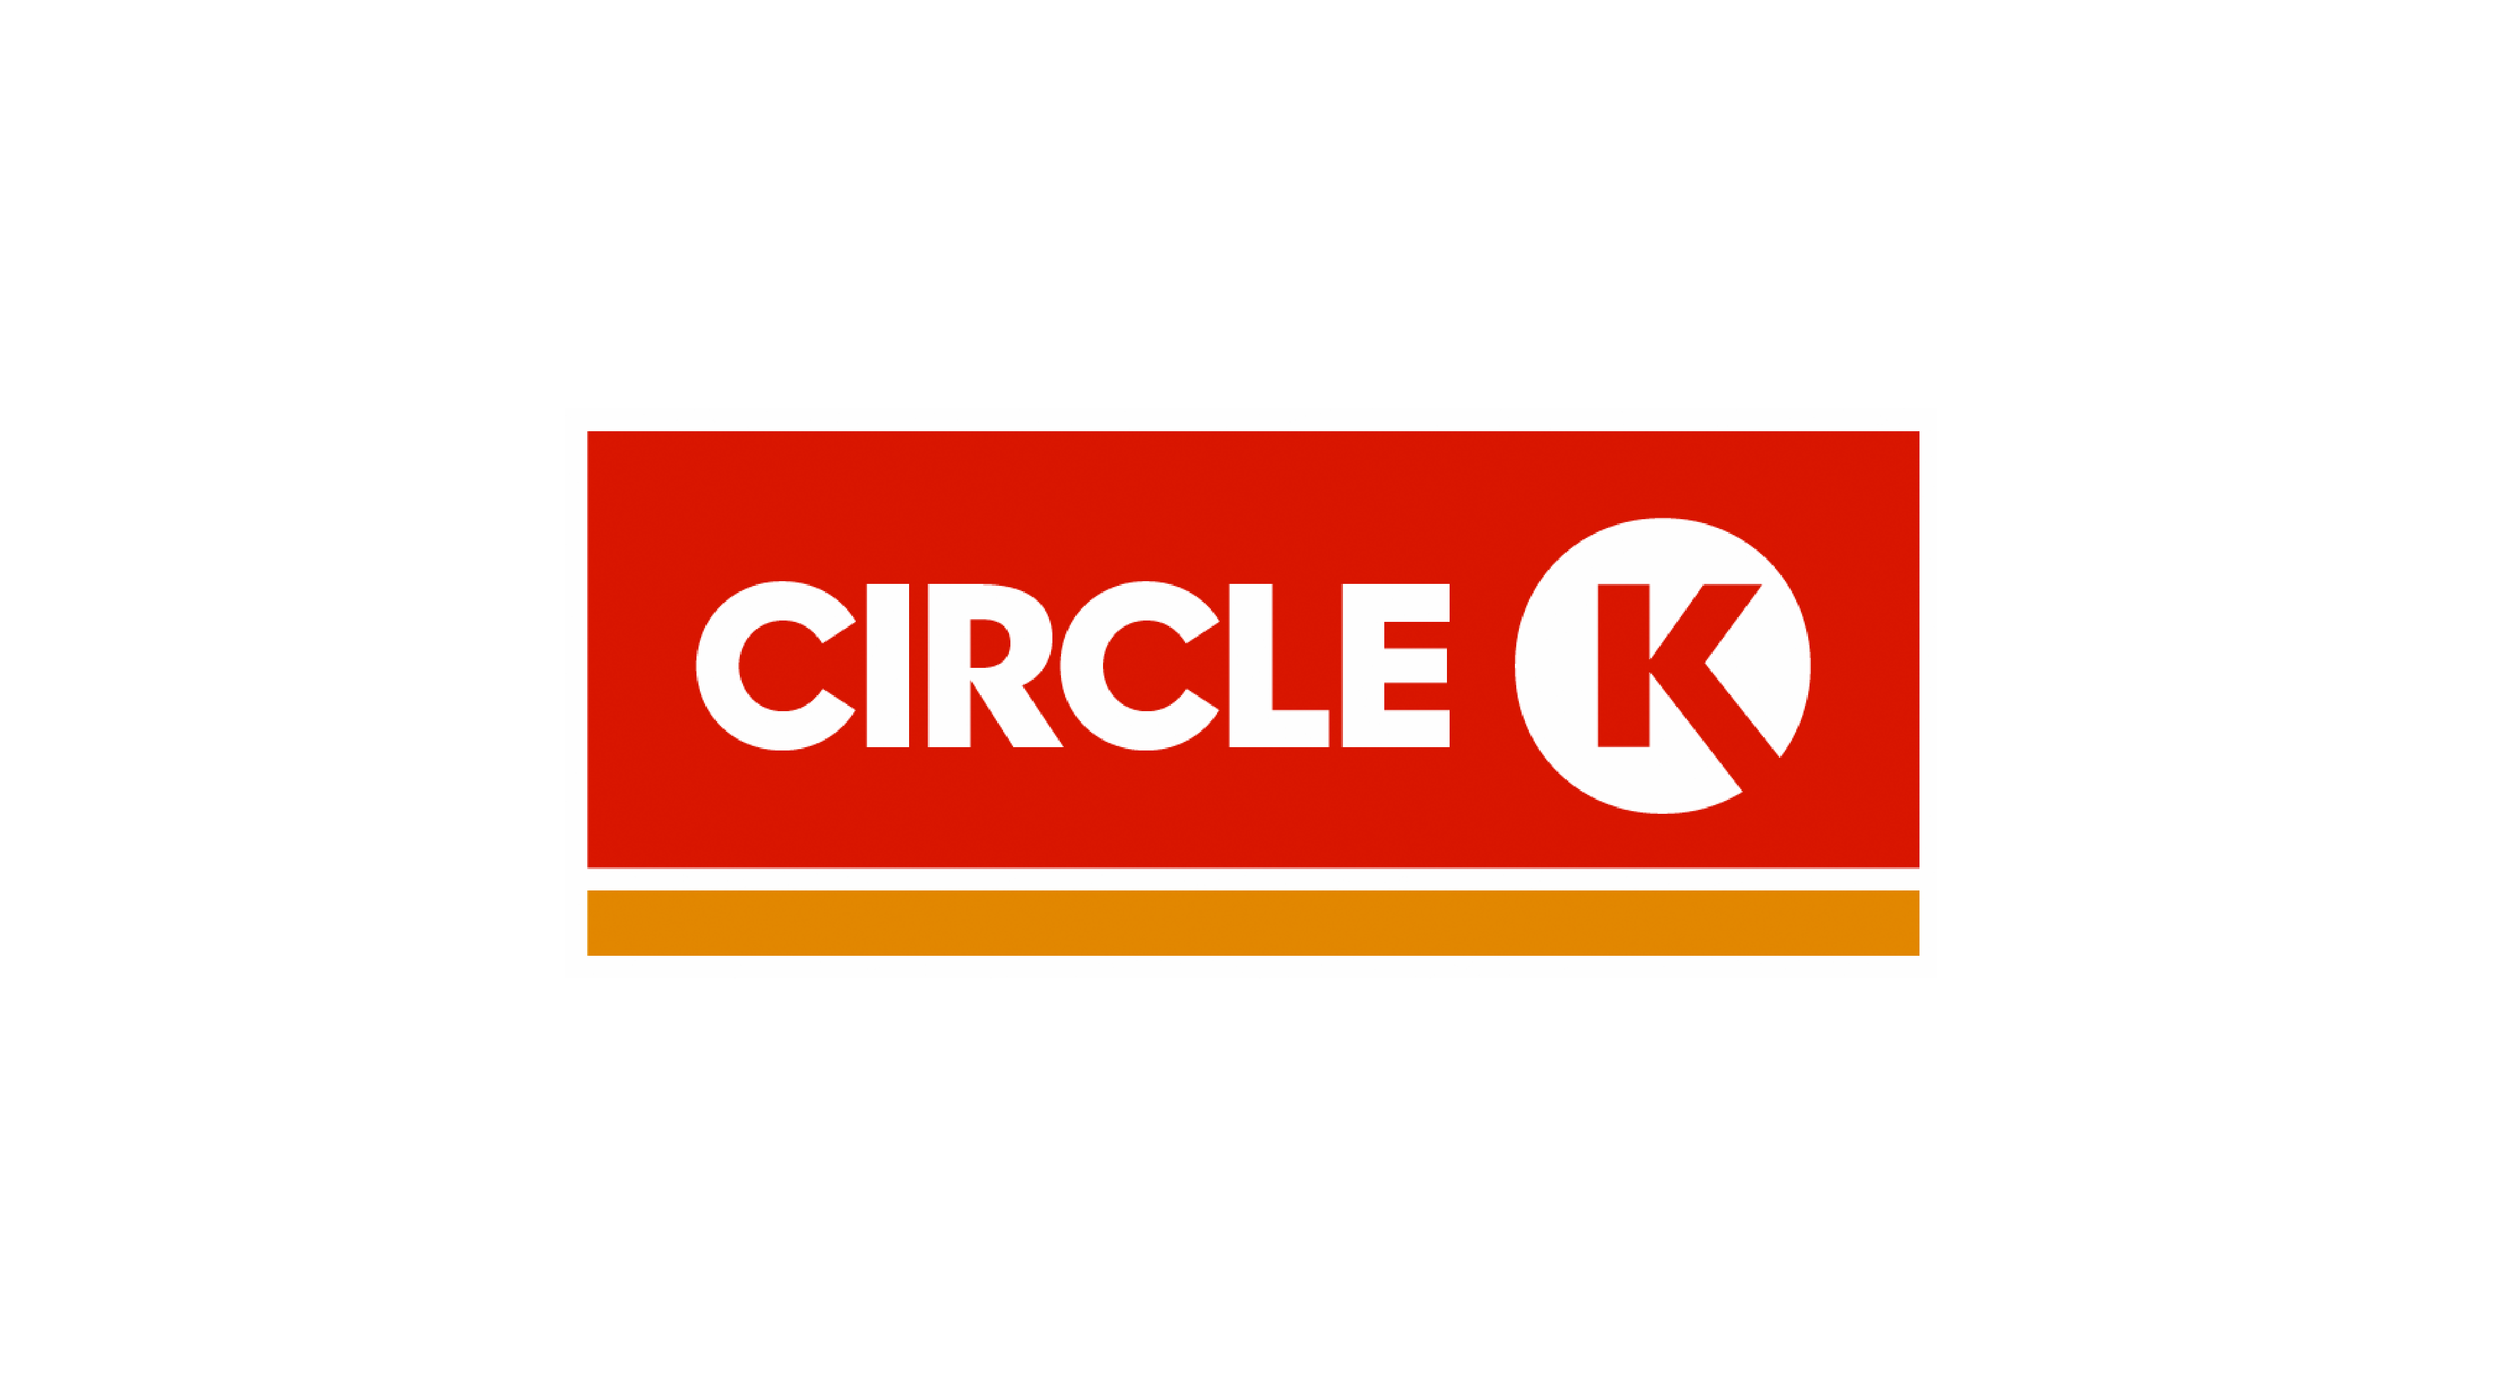 asset-draft-logos_circle-k.png